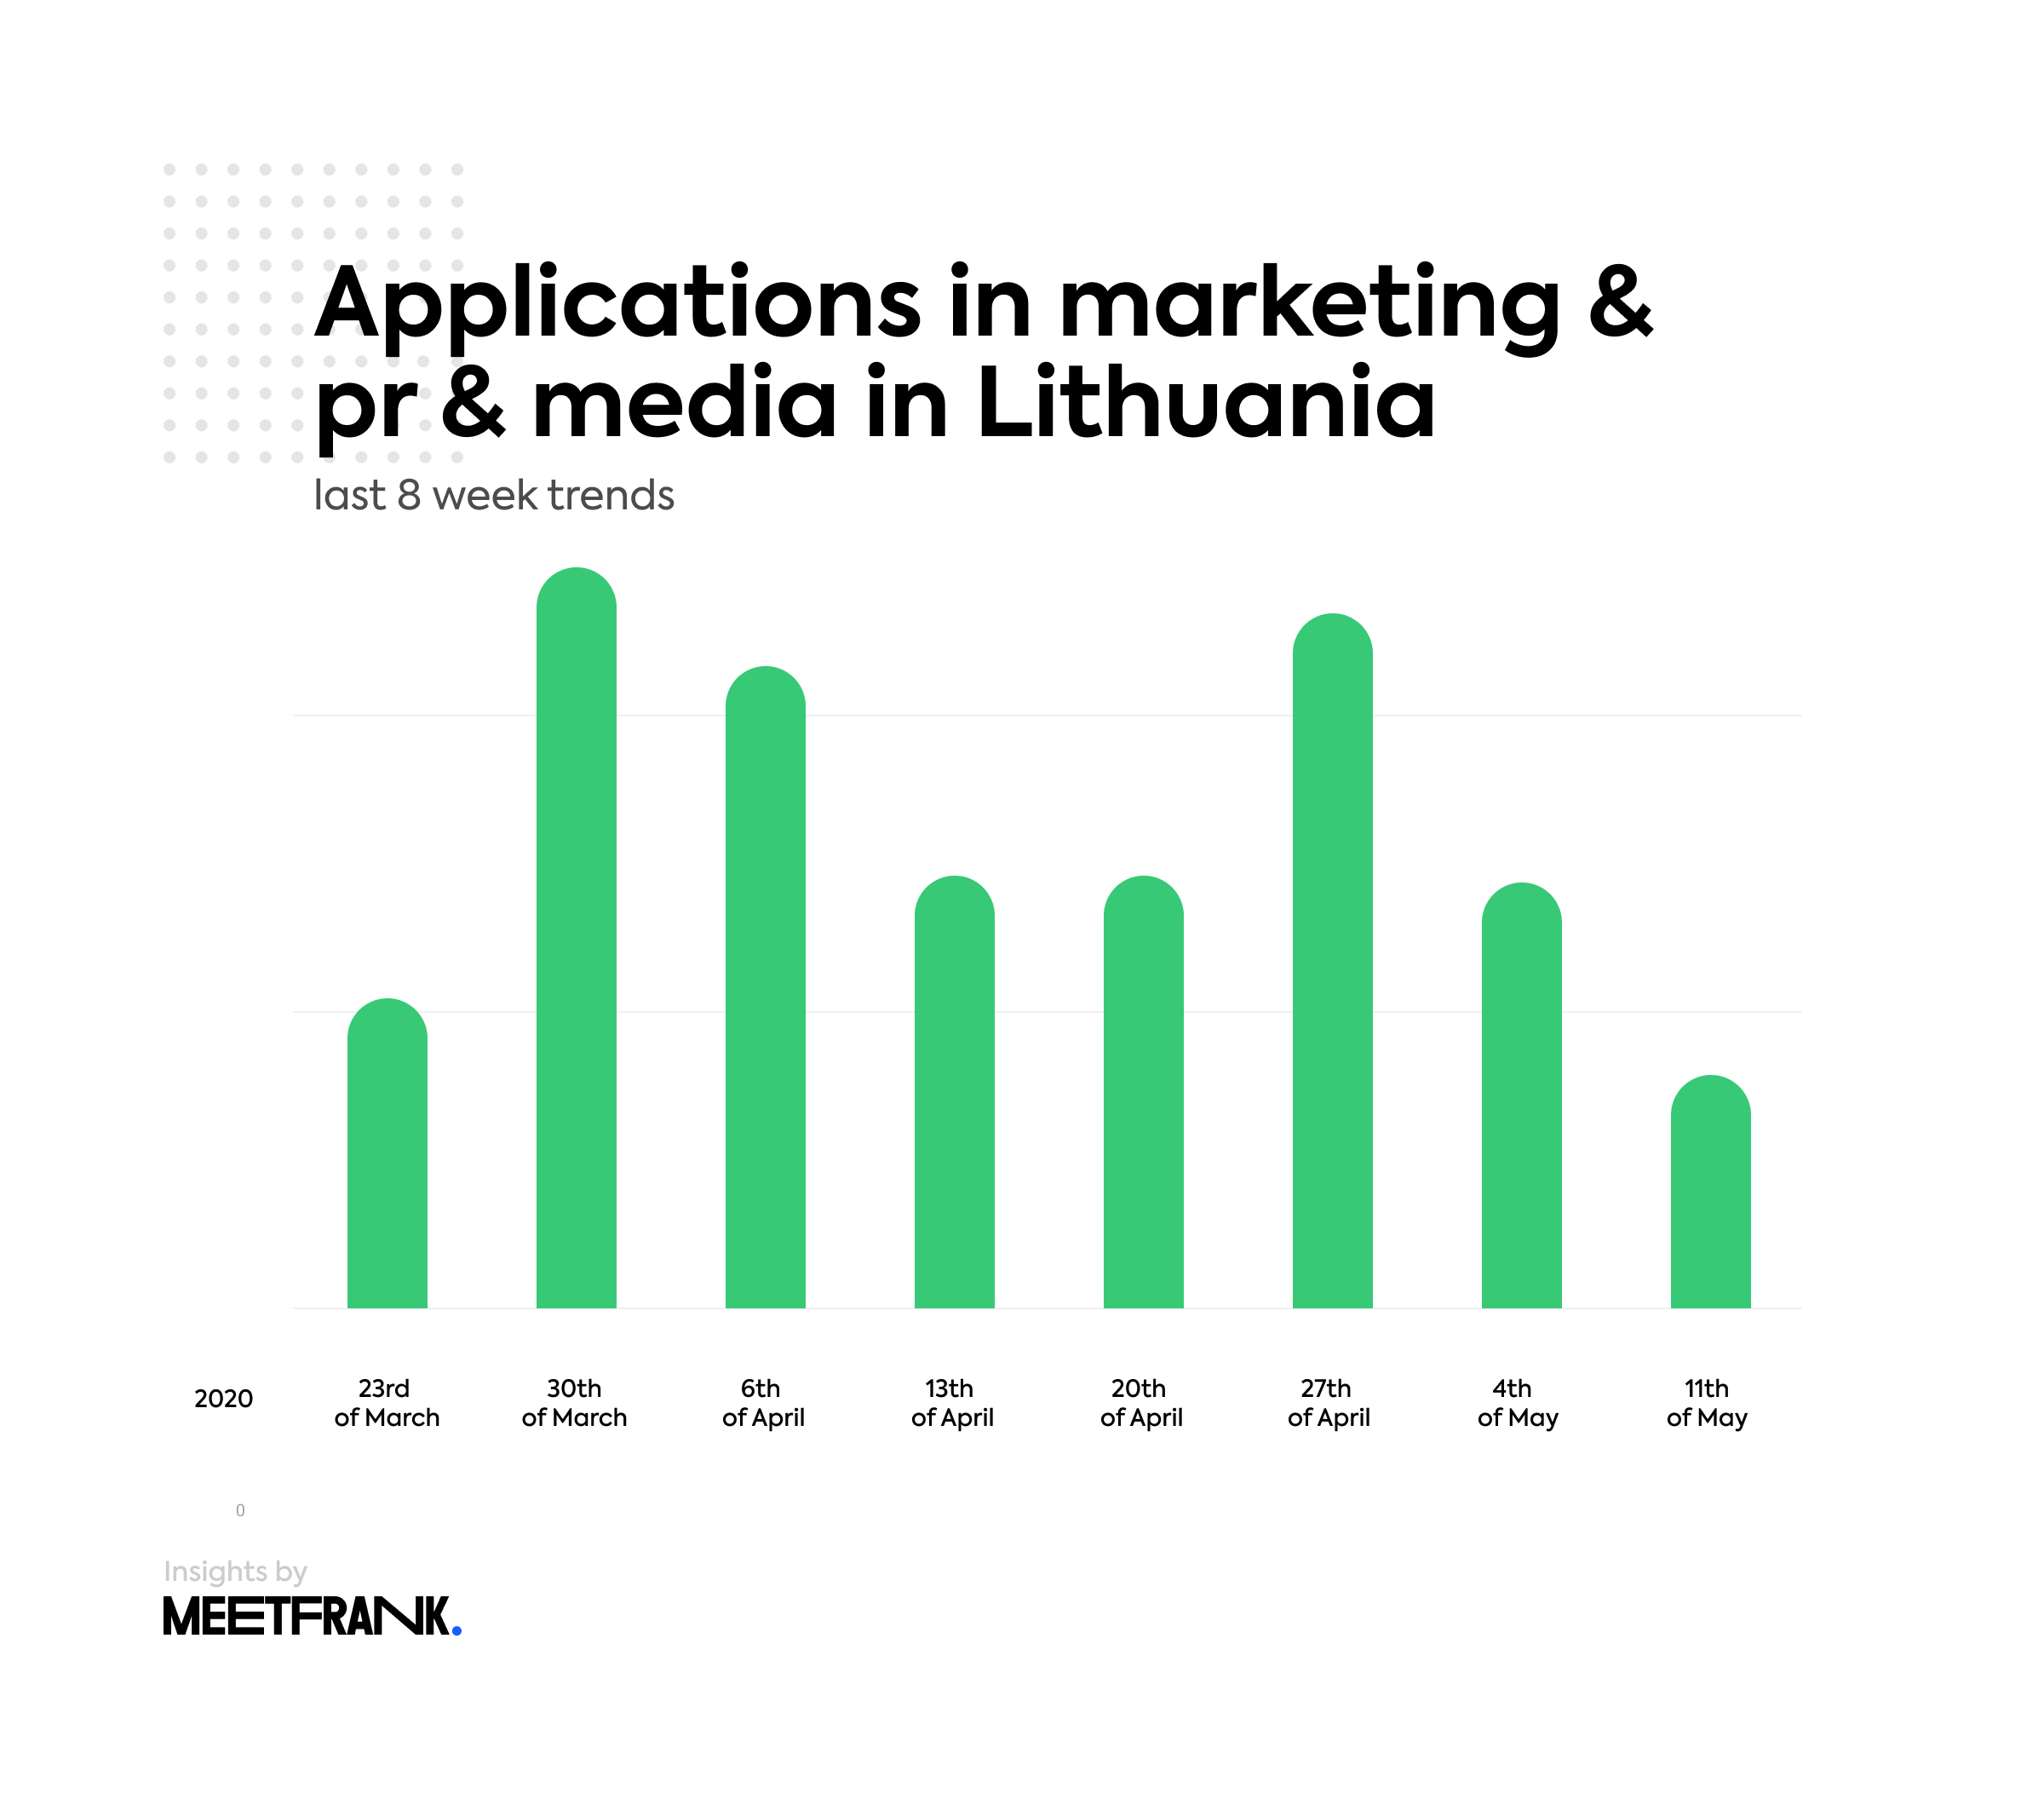 applications in marketing & pr & media in Lithuania